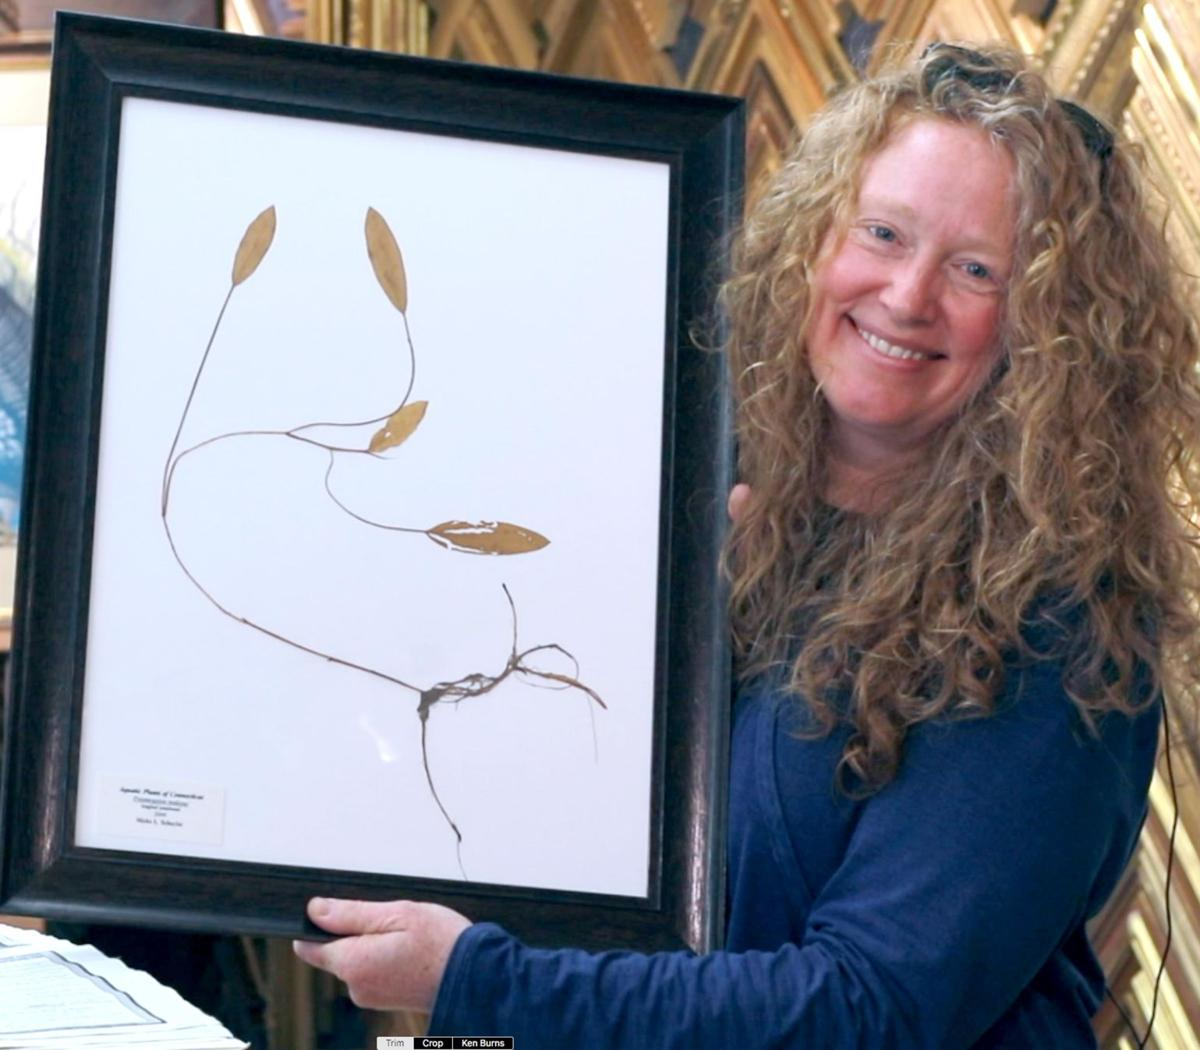 Aquatic-themed art by 2 artists on tap at Woodbury Library